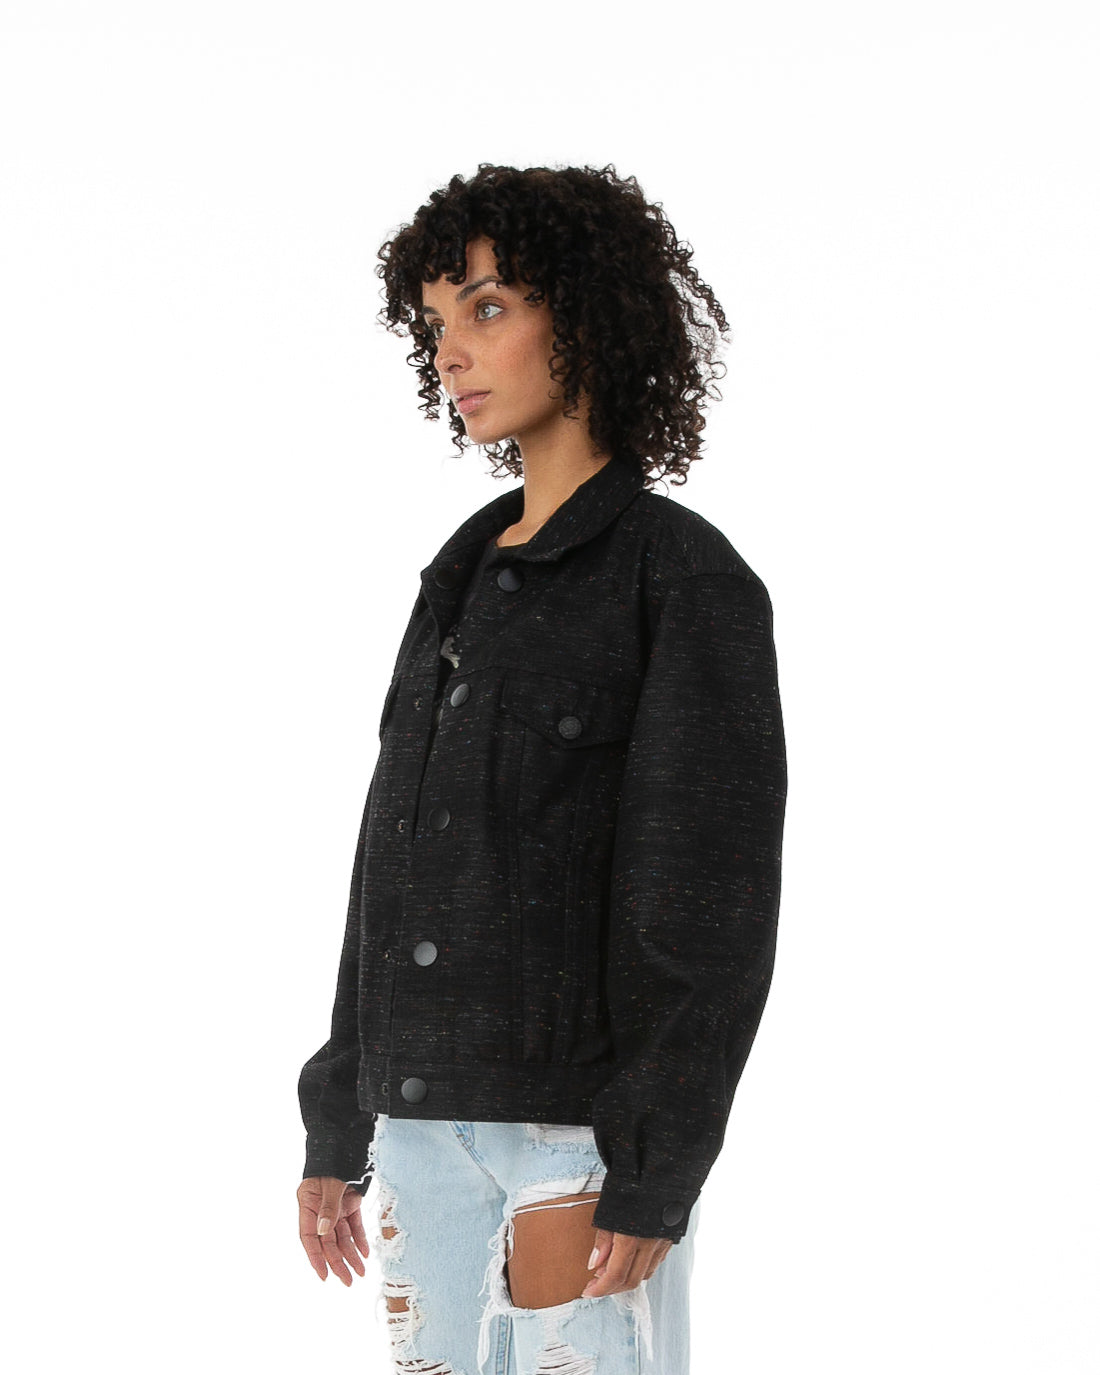 Side of female model wearing Reversible Parlor black denim jacket